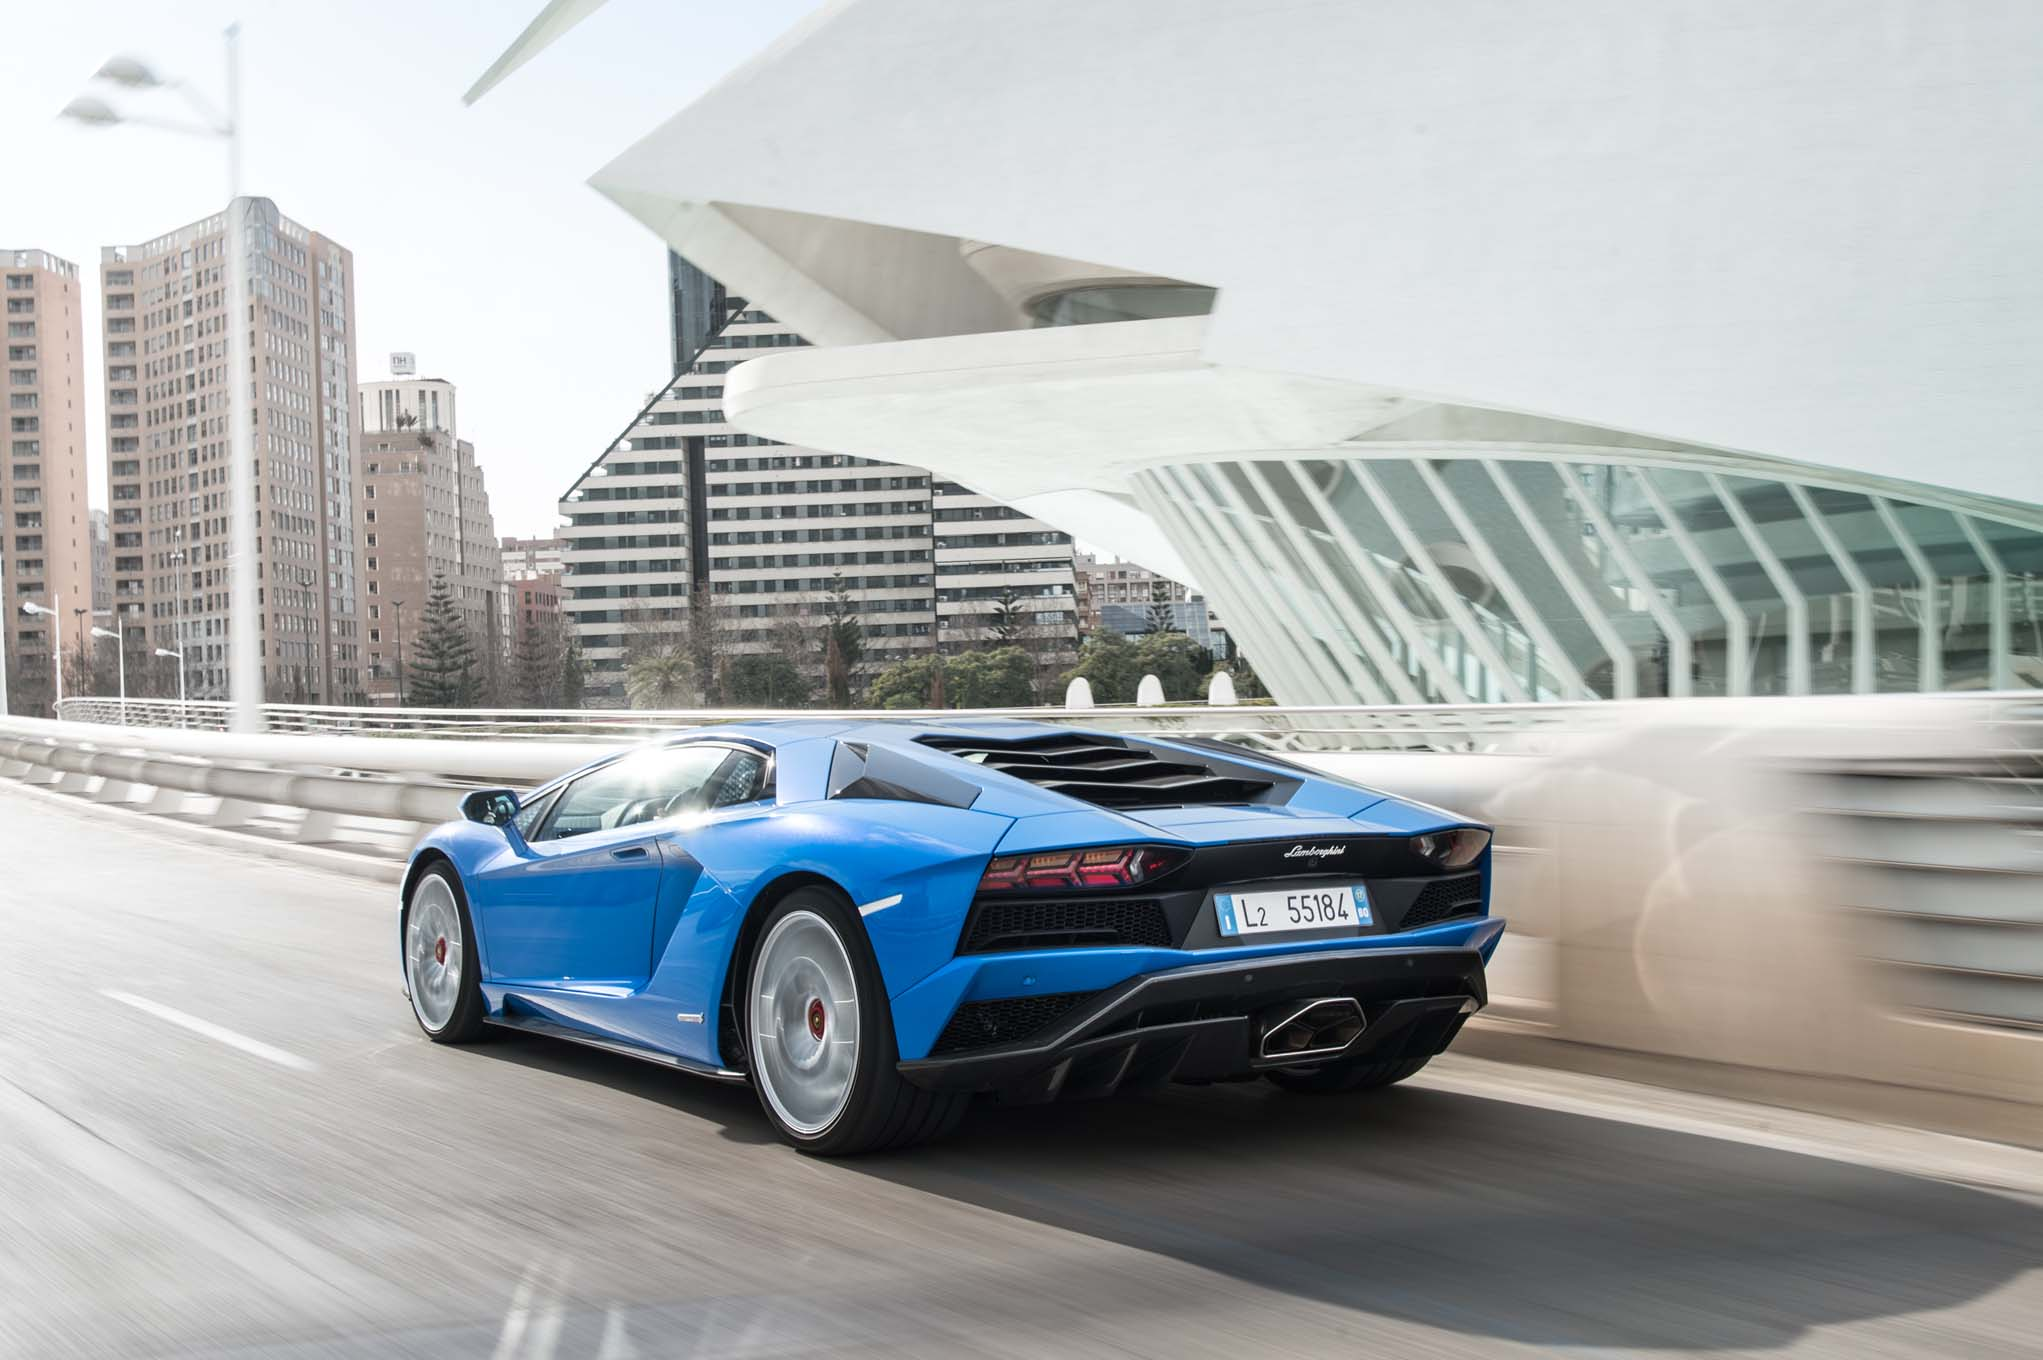 2018 Lamborghini Aventador S Rear Three Quarter In Motion 09